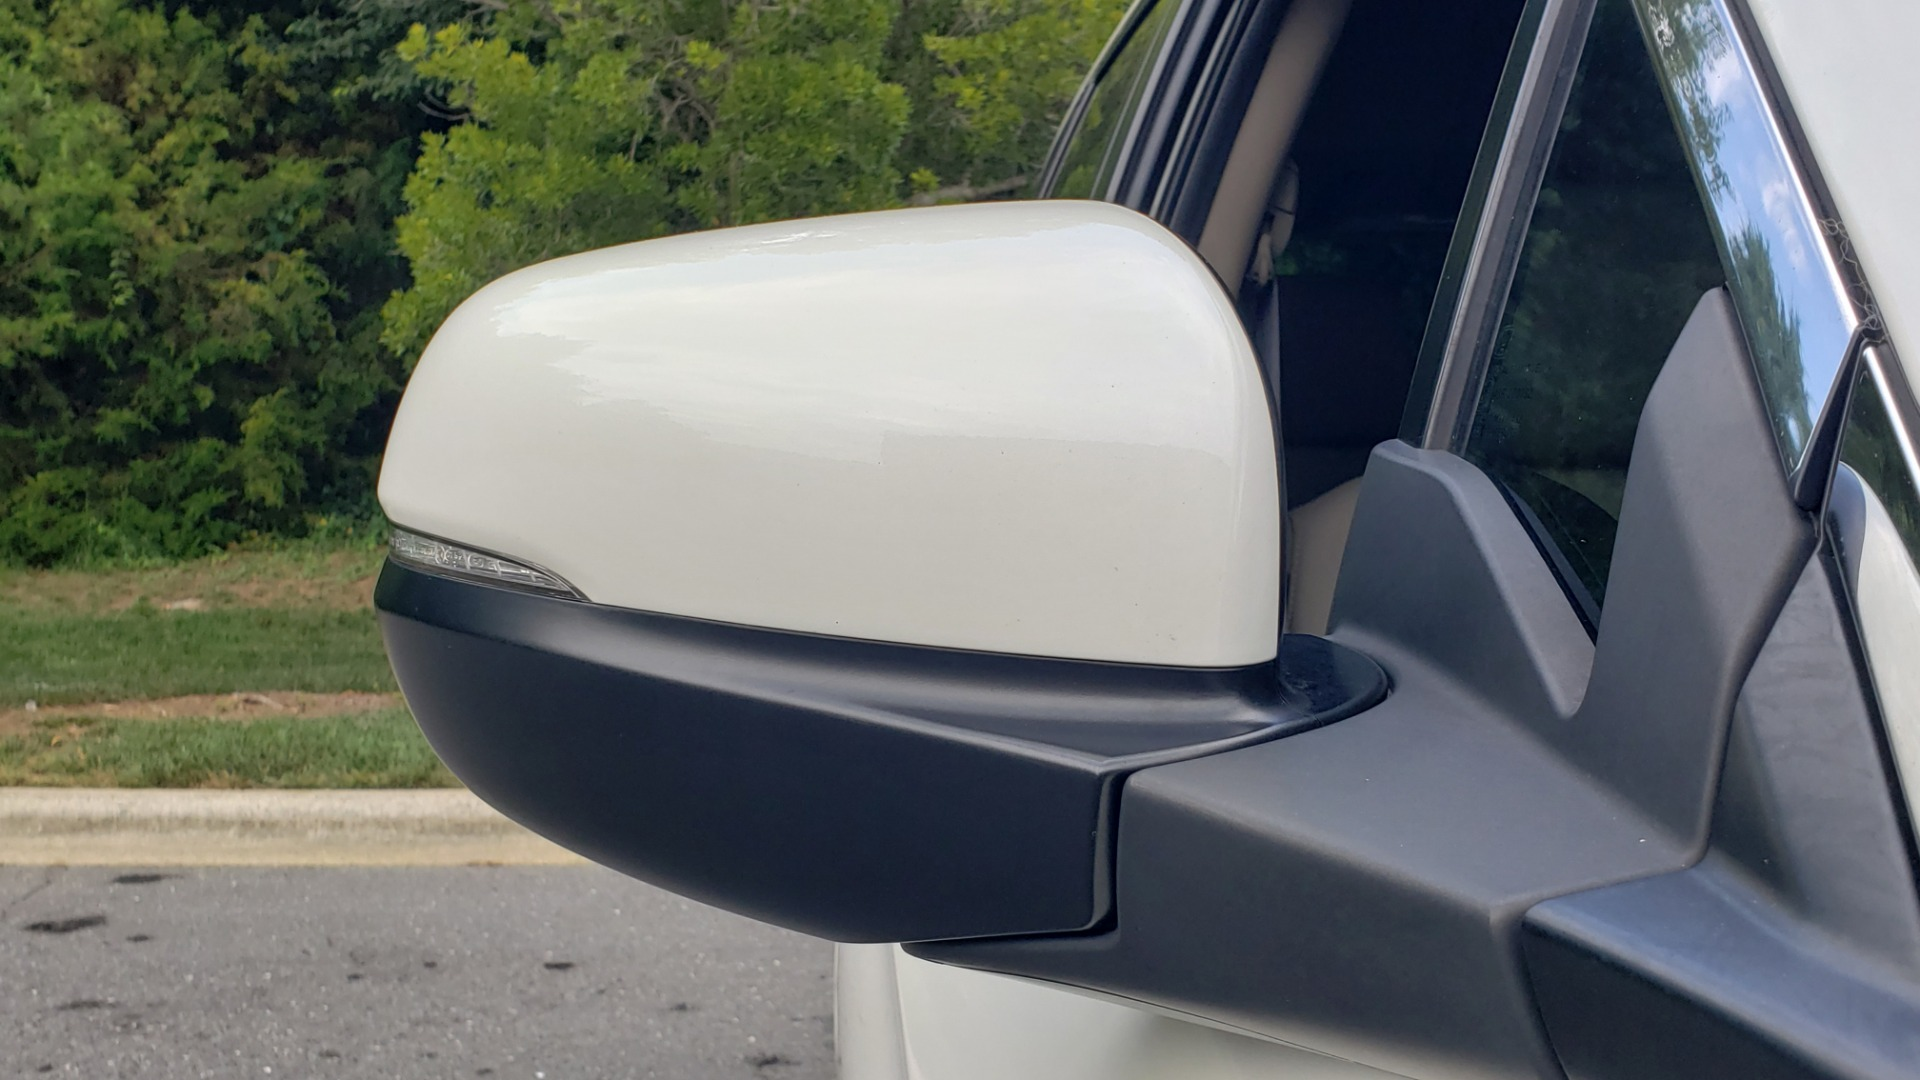 Used 2019 Honda PILOT EX-L / V6 / NAV / SUNROOF / DVD / 3-ROW / REARVIEW for sale Sold at Formula Imports in Charlotte NC 28227 26